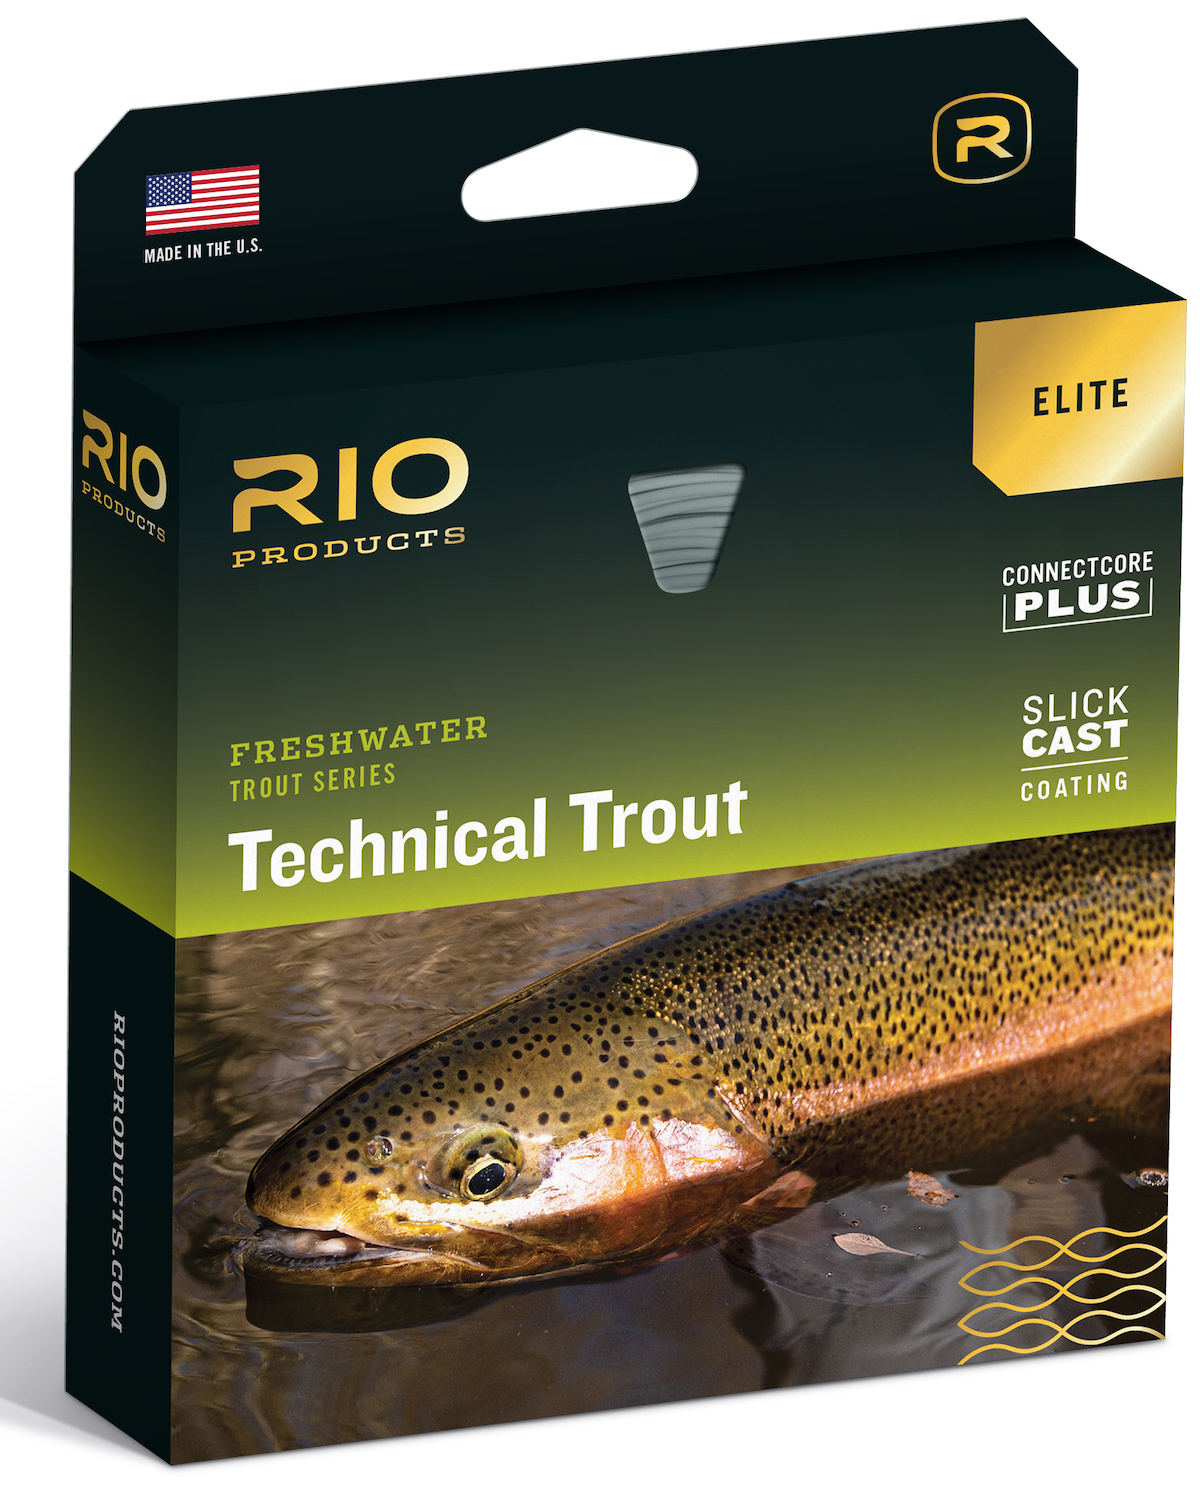 NEW! RIO Elite Technical Trout Fly Line